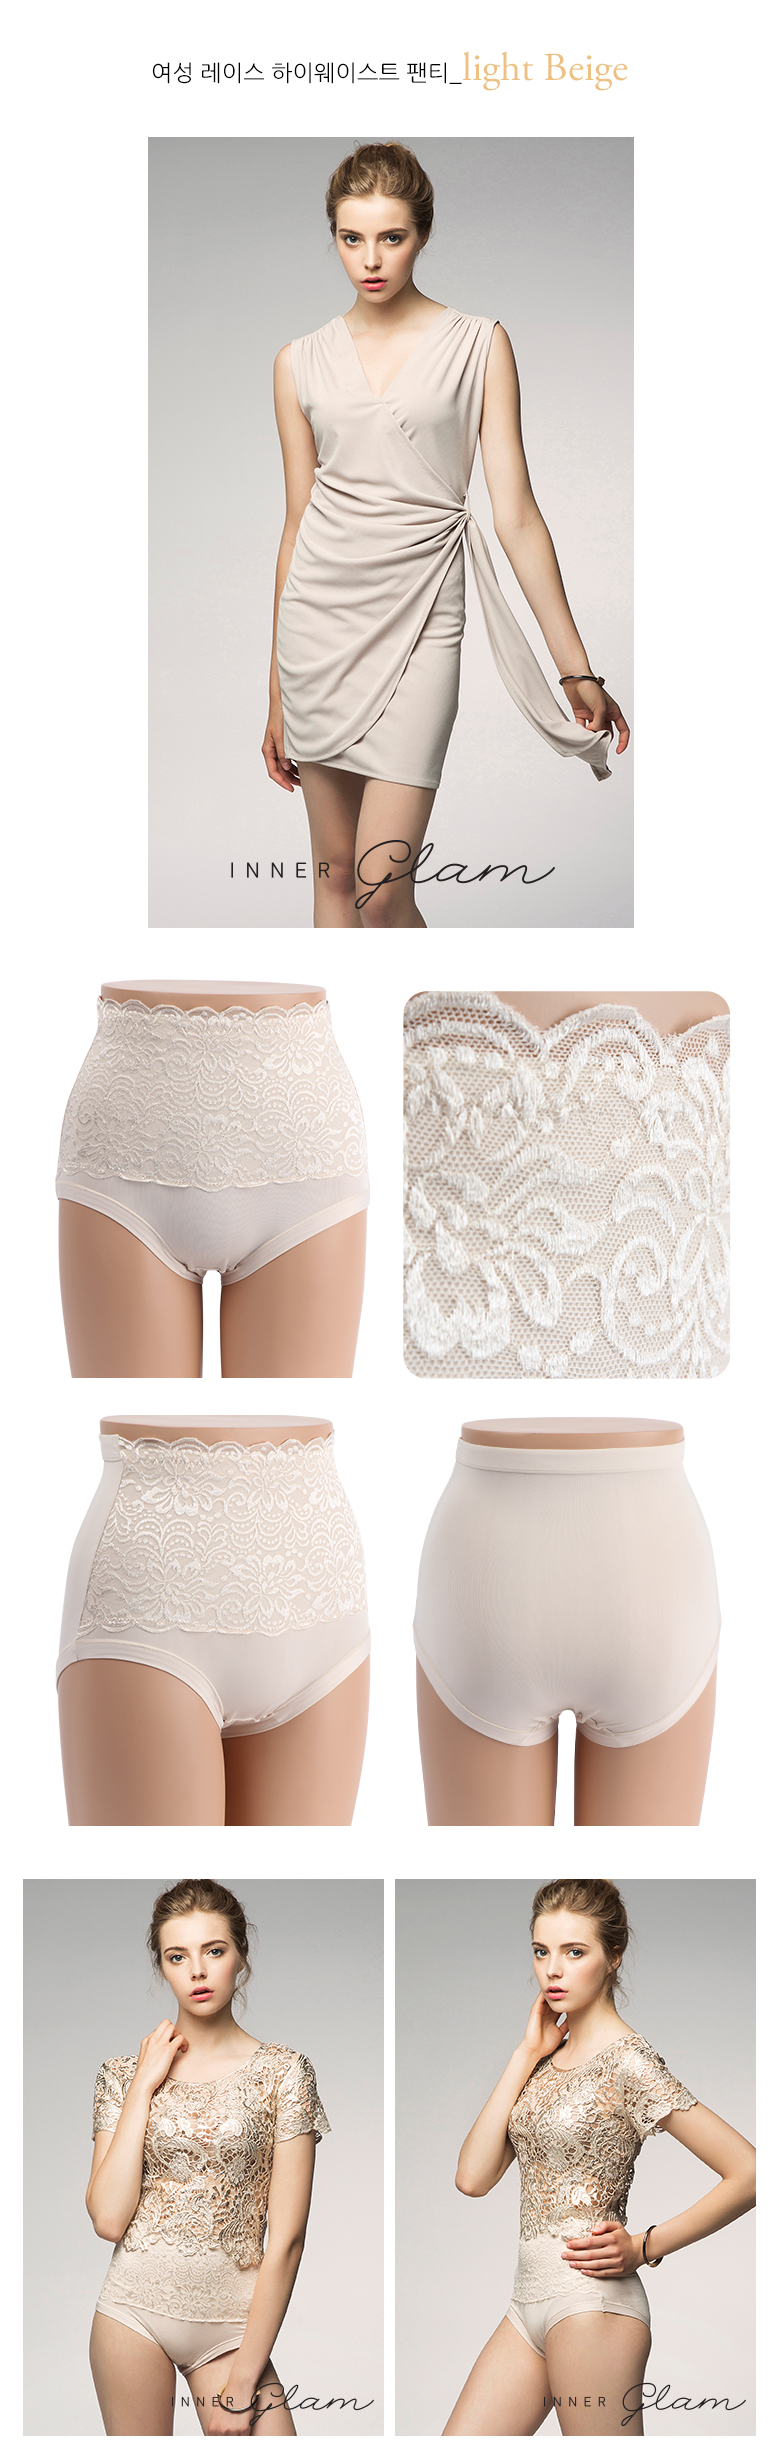 [ innerglam ] Women high waist lace panties 03